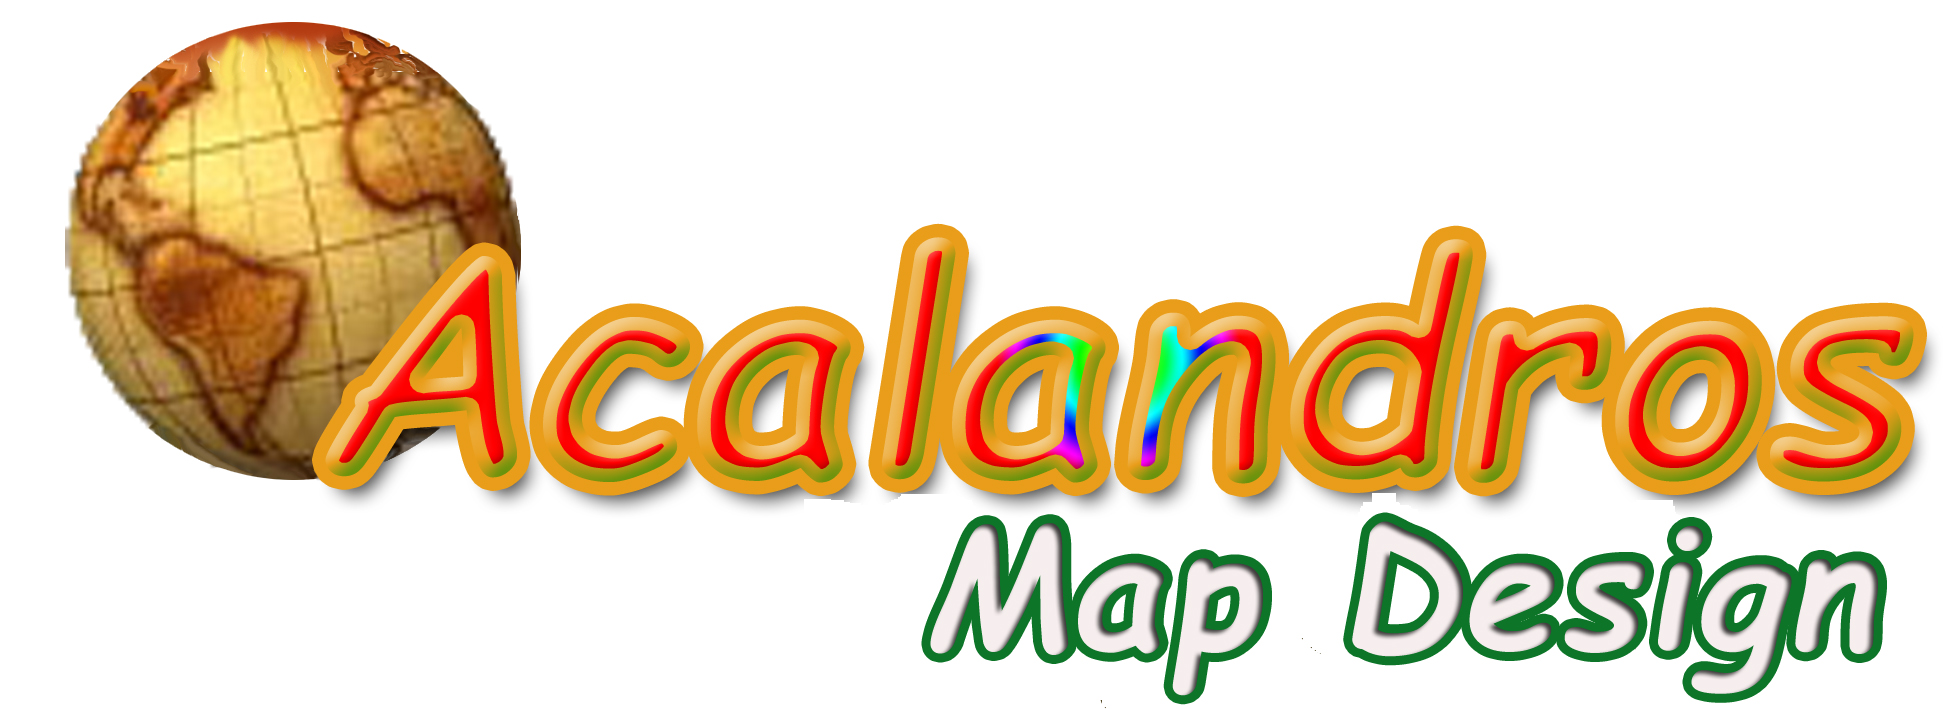 Logo Acalandros Map Design